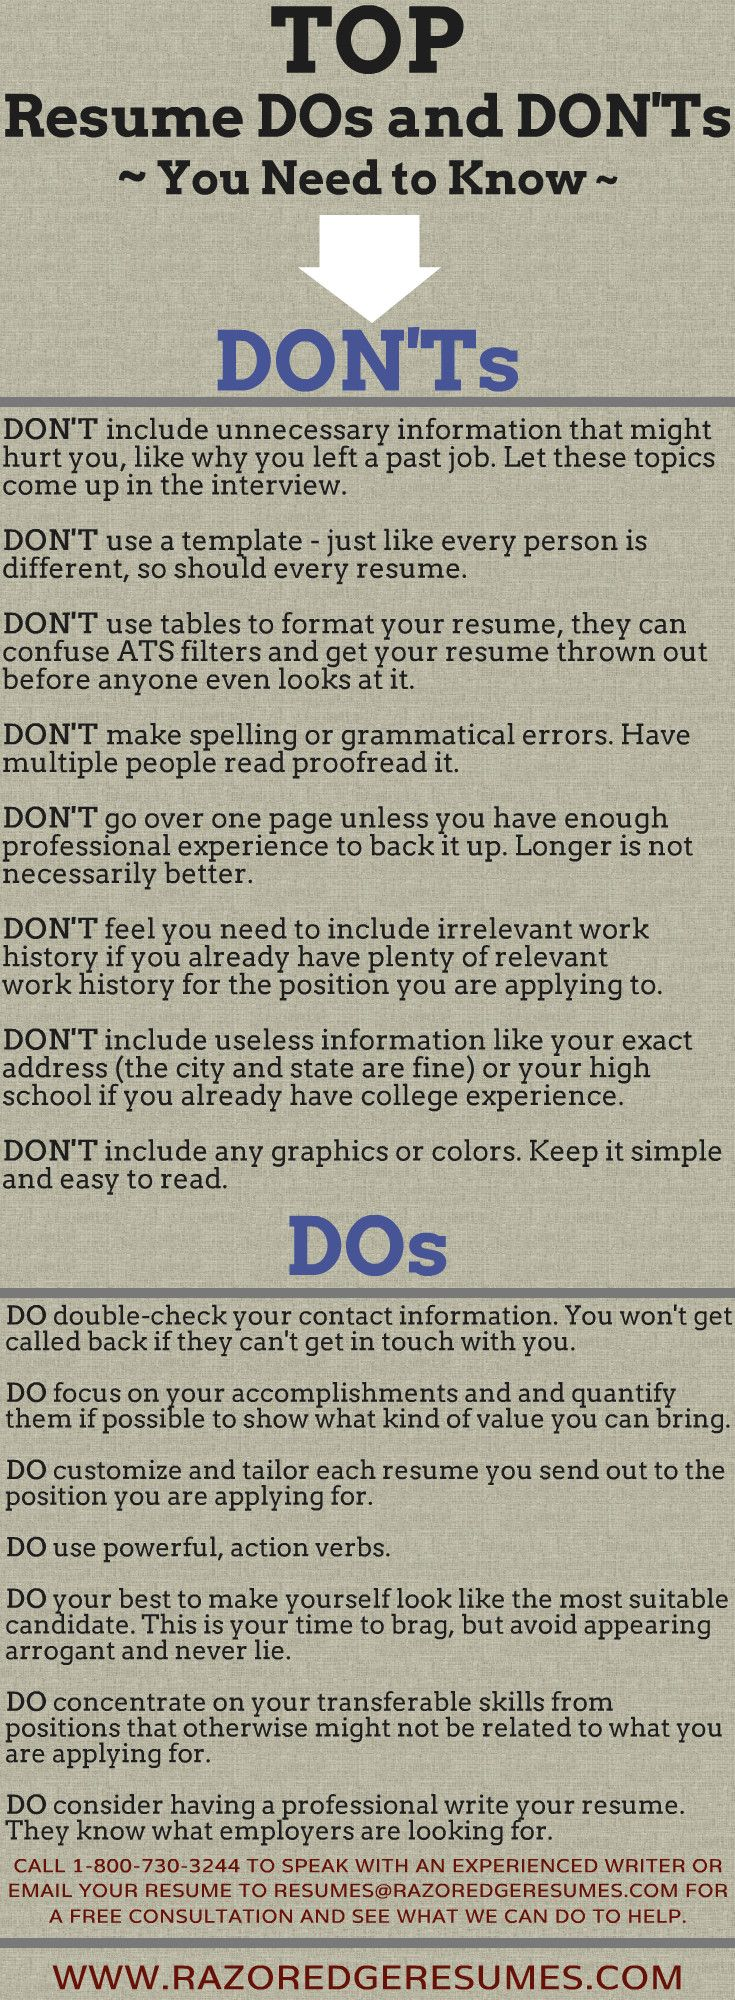 Resume do's and don'ts. For more job search tips: http://www.razoredgeresumes.com/jobsearch_blog/how-interview-savvy-are-you